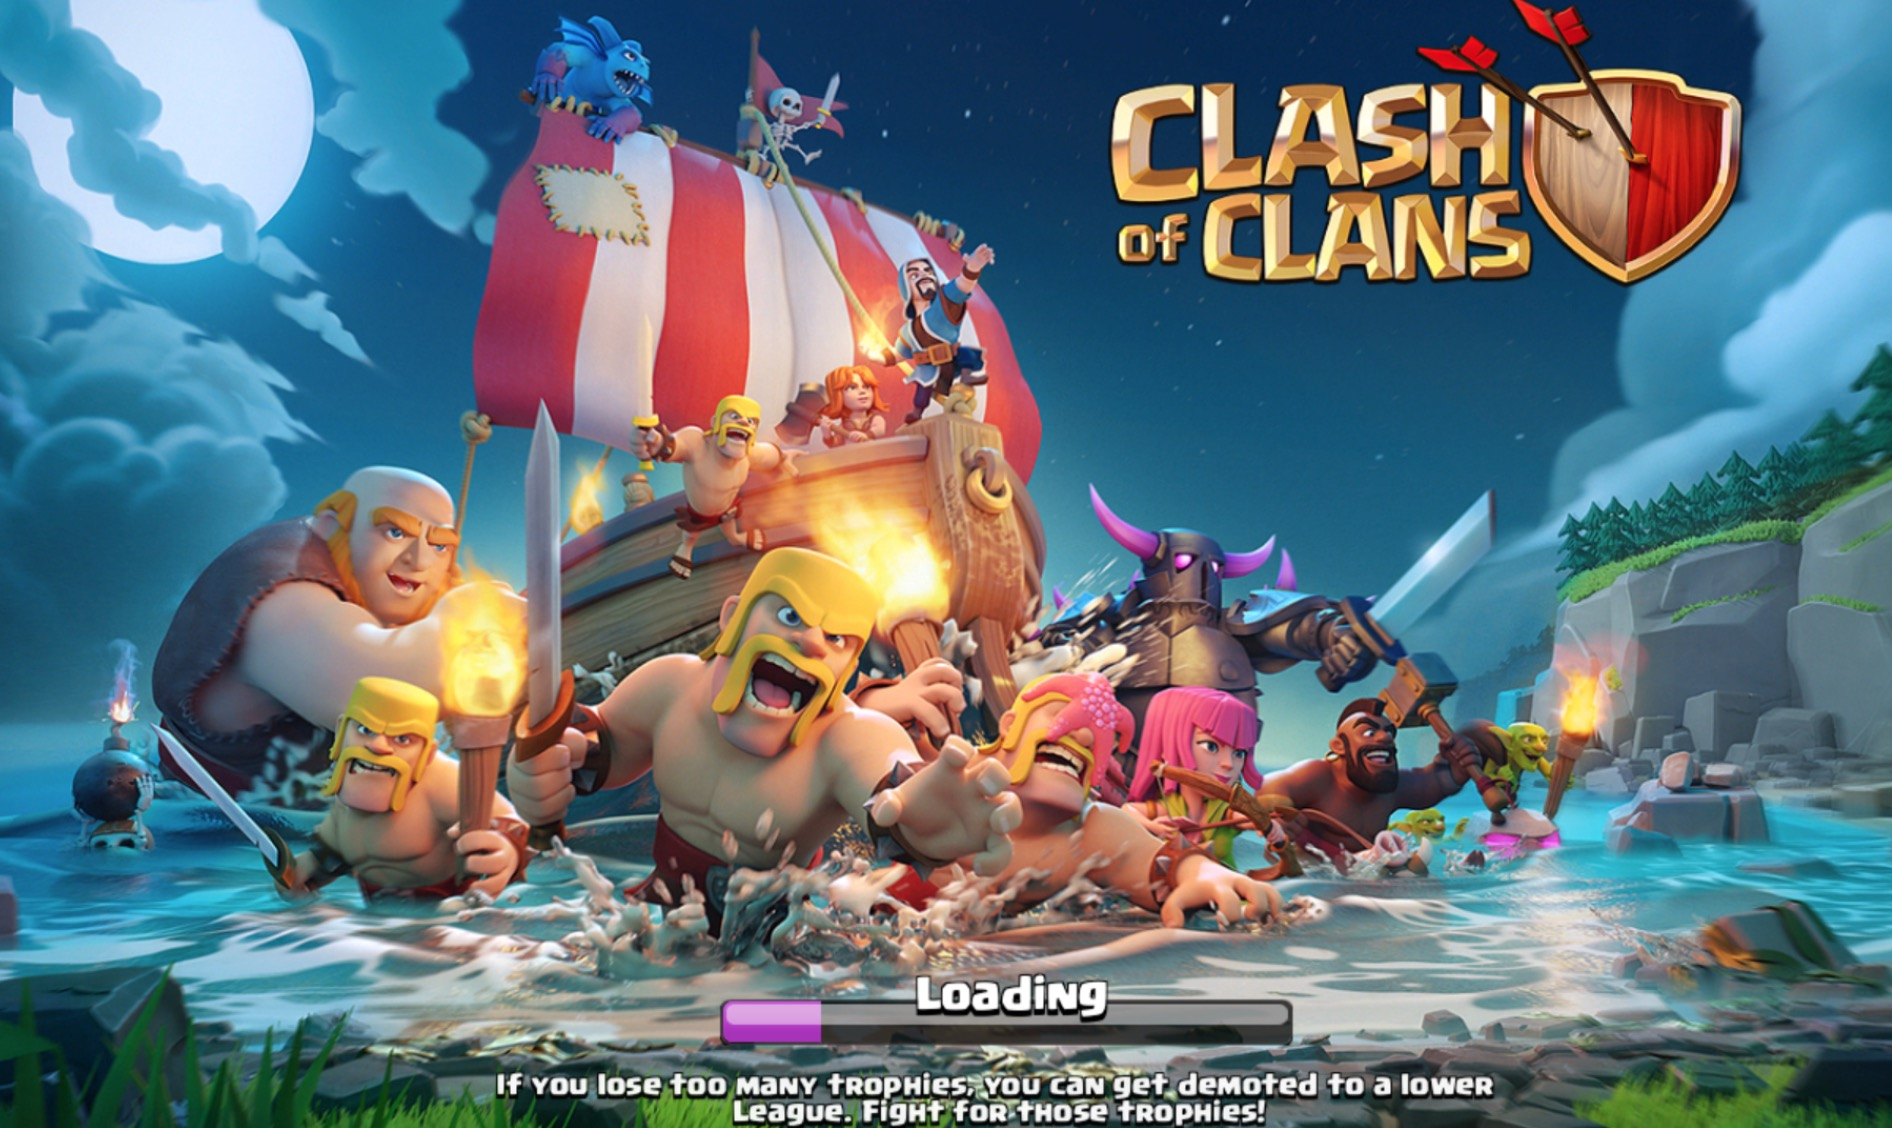 June Clash of Clans Builder Base Update: What to Know